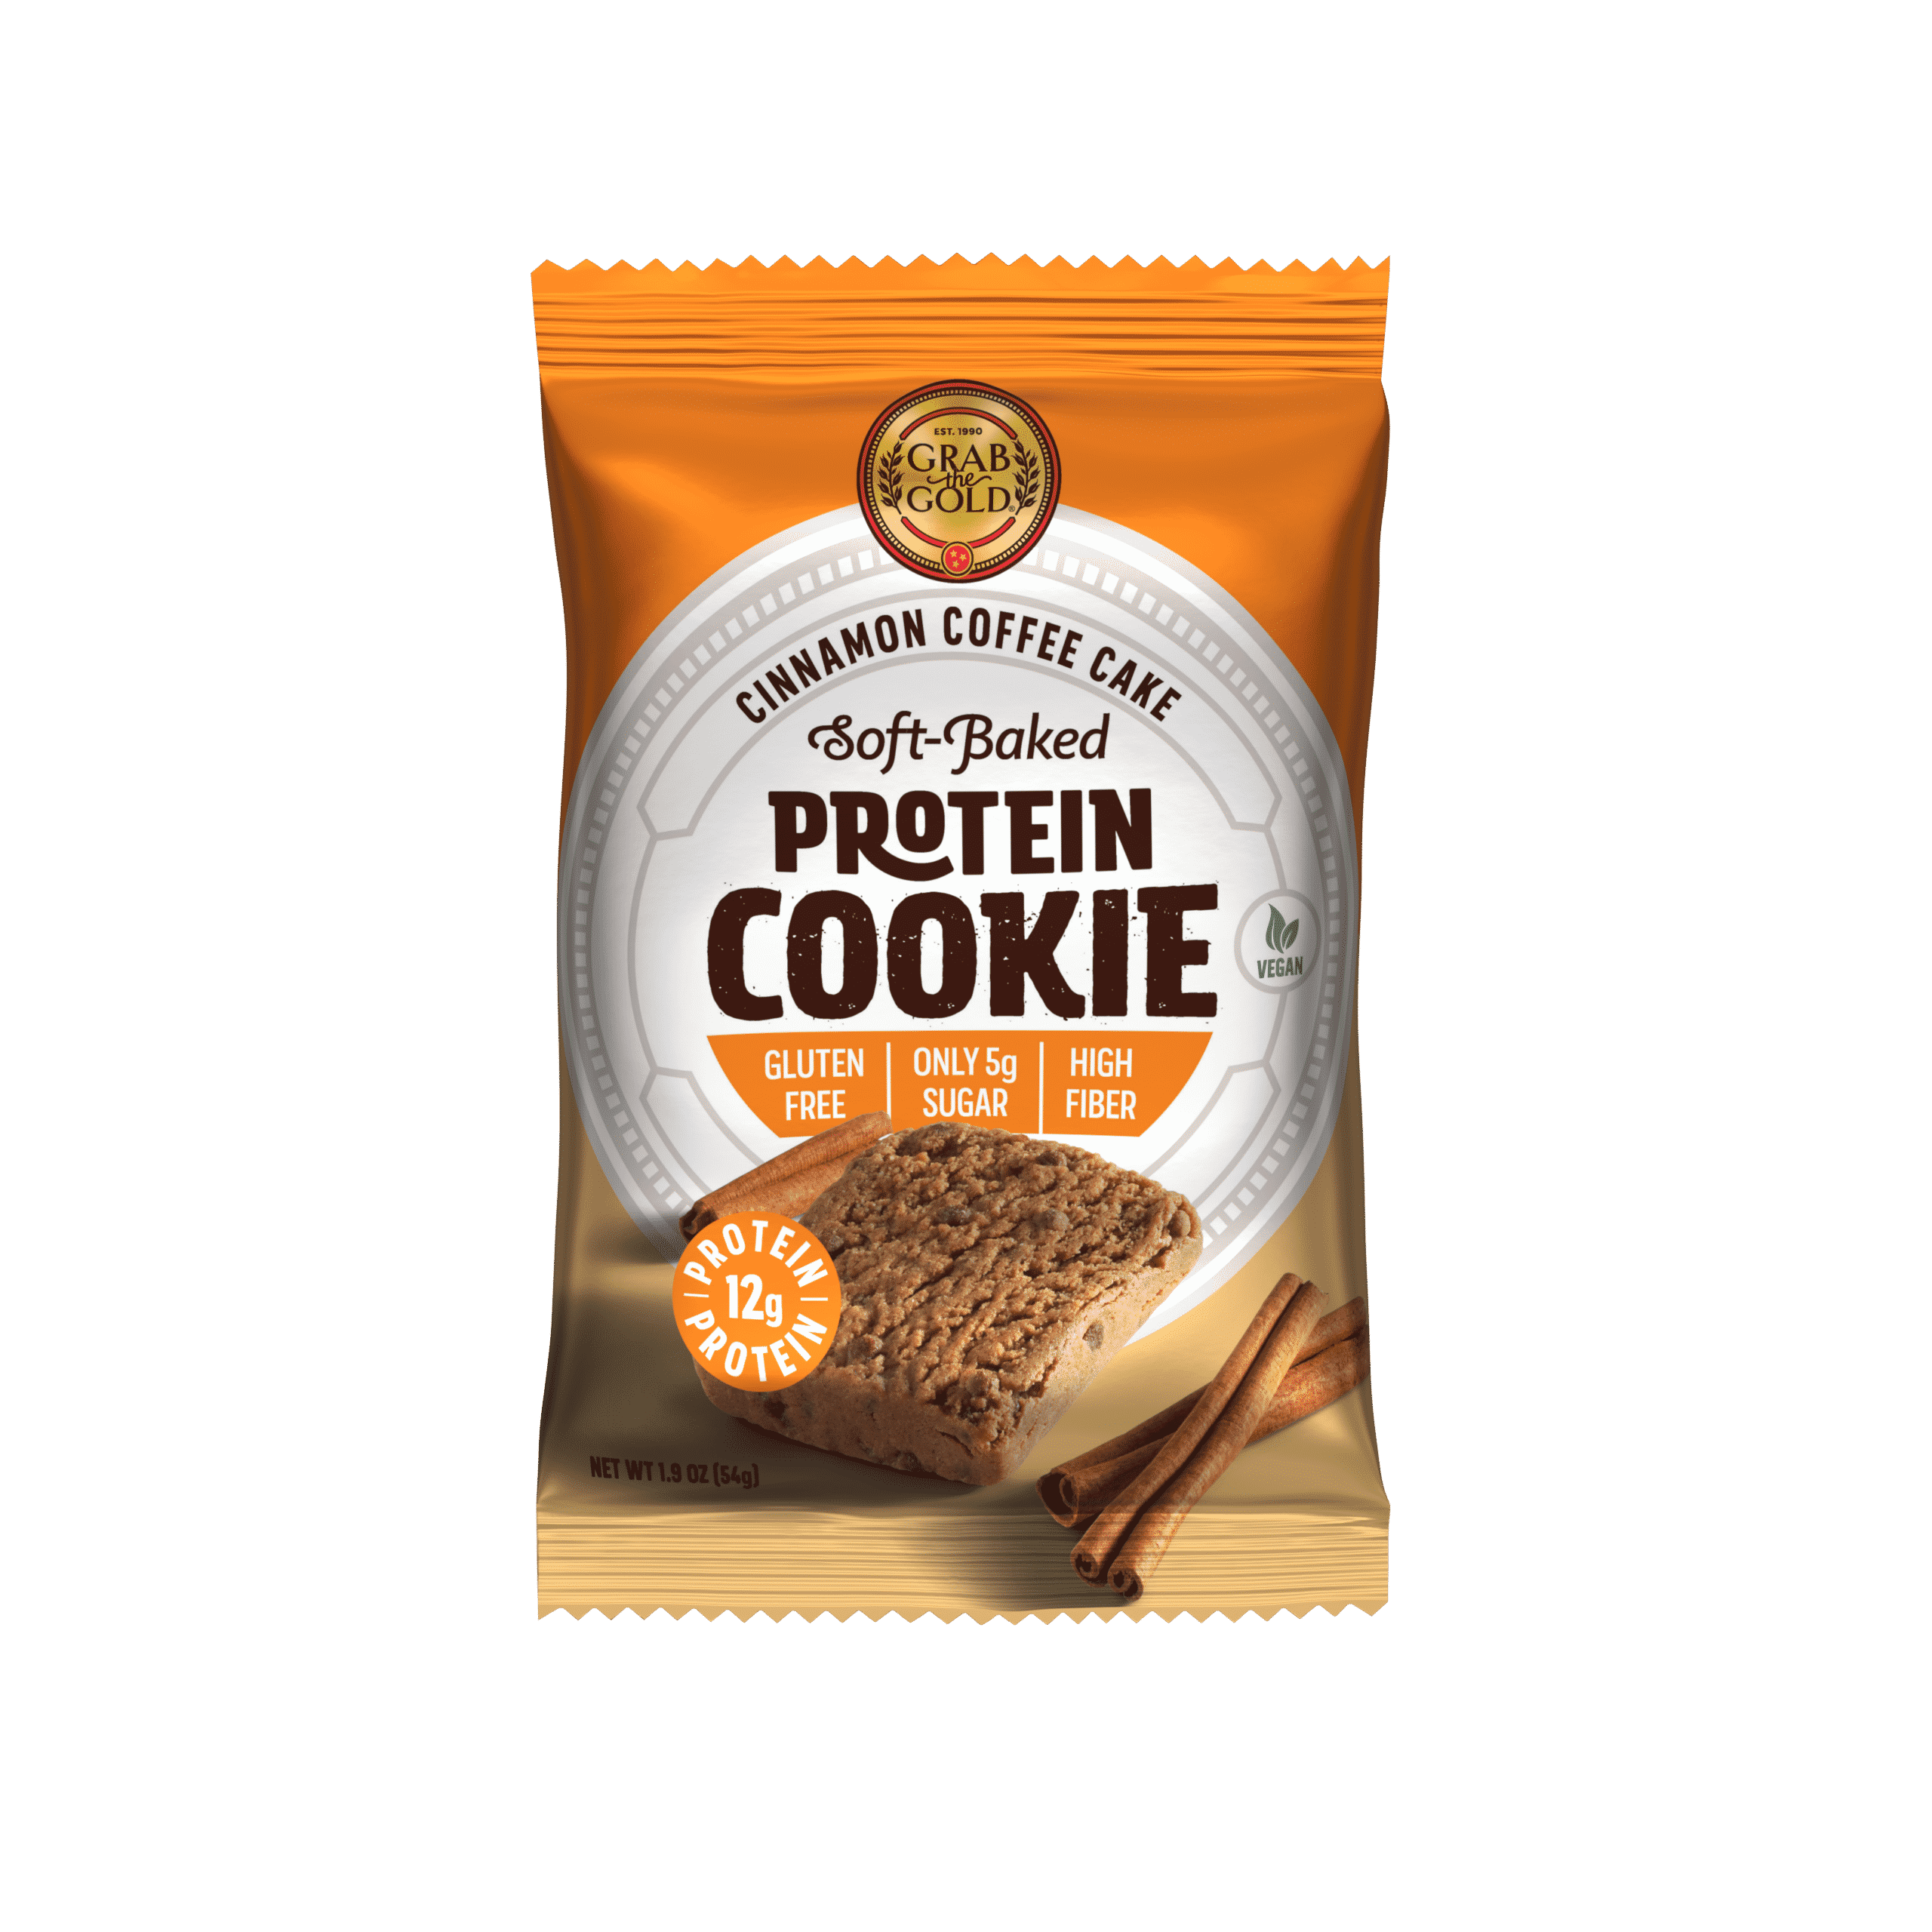 Grab The Gold Protein Cookie CCC Wrapper Rendered 07.20